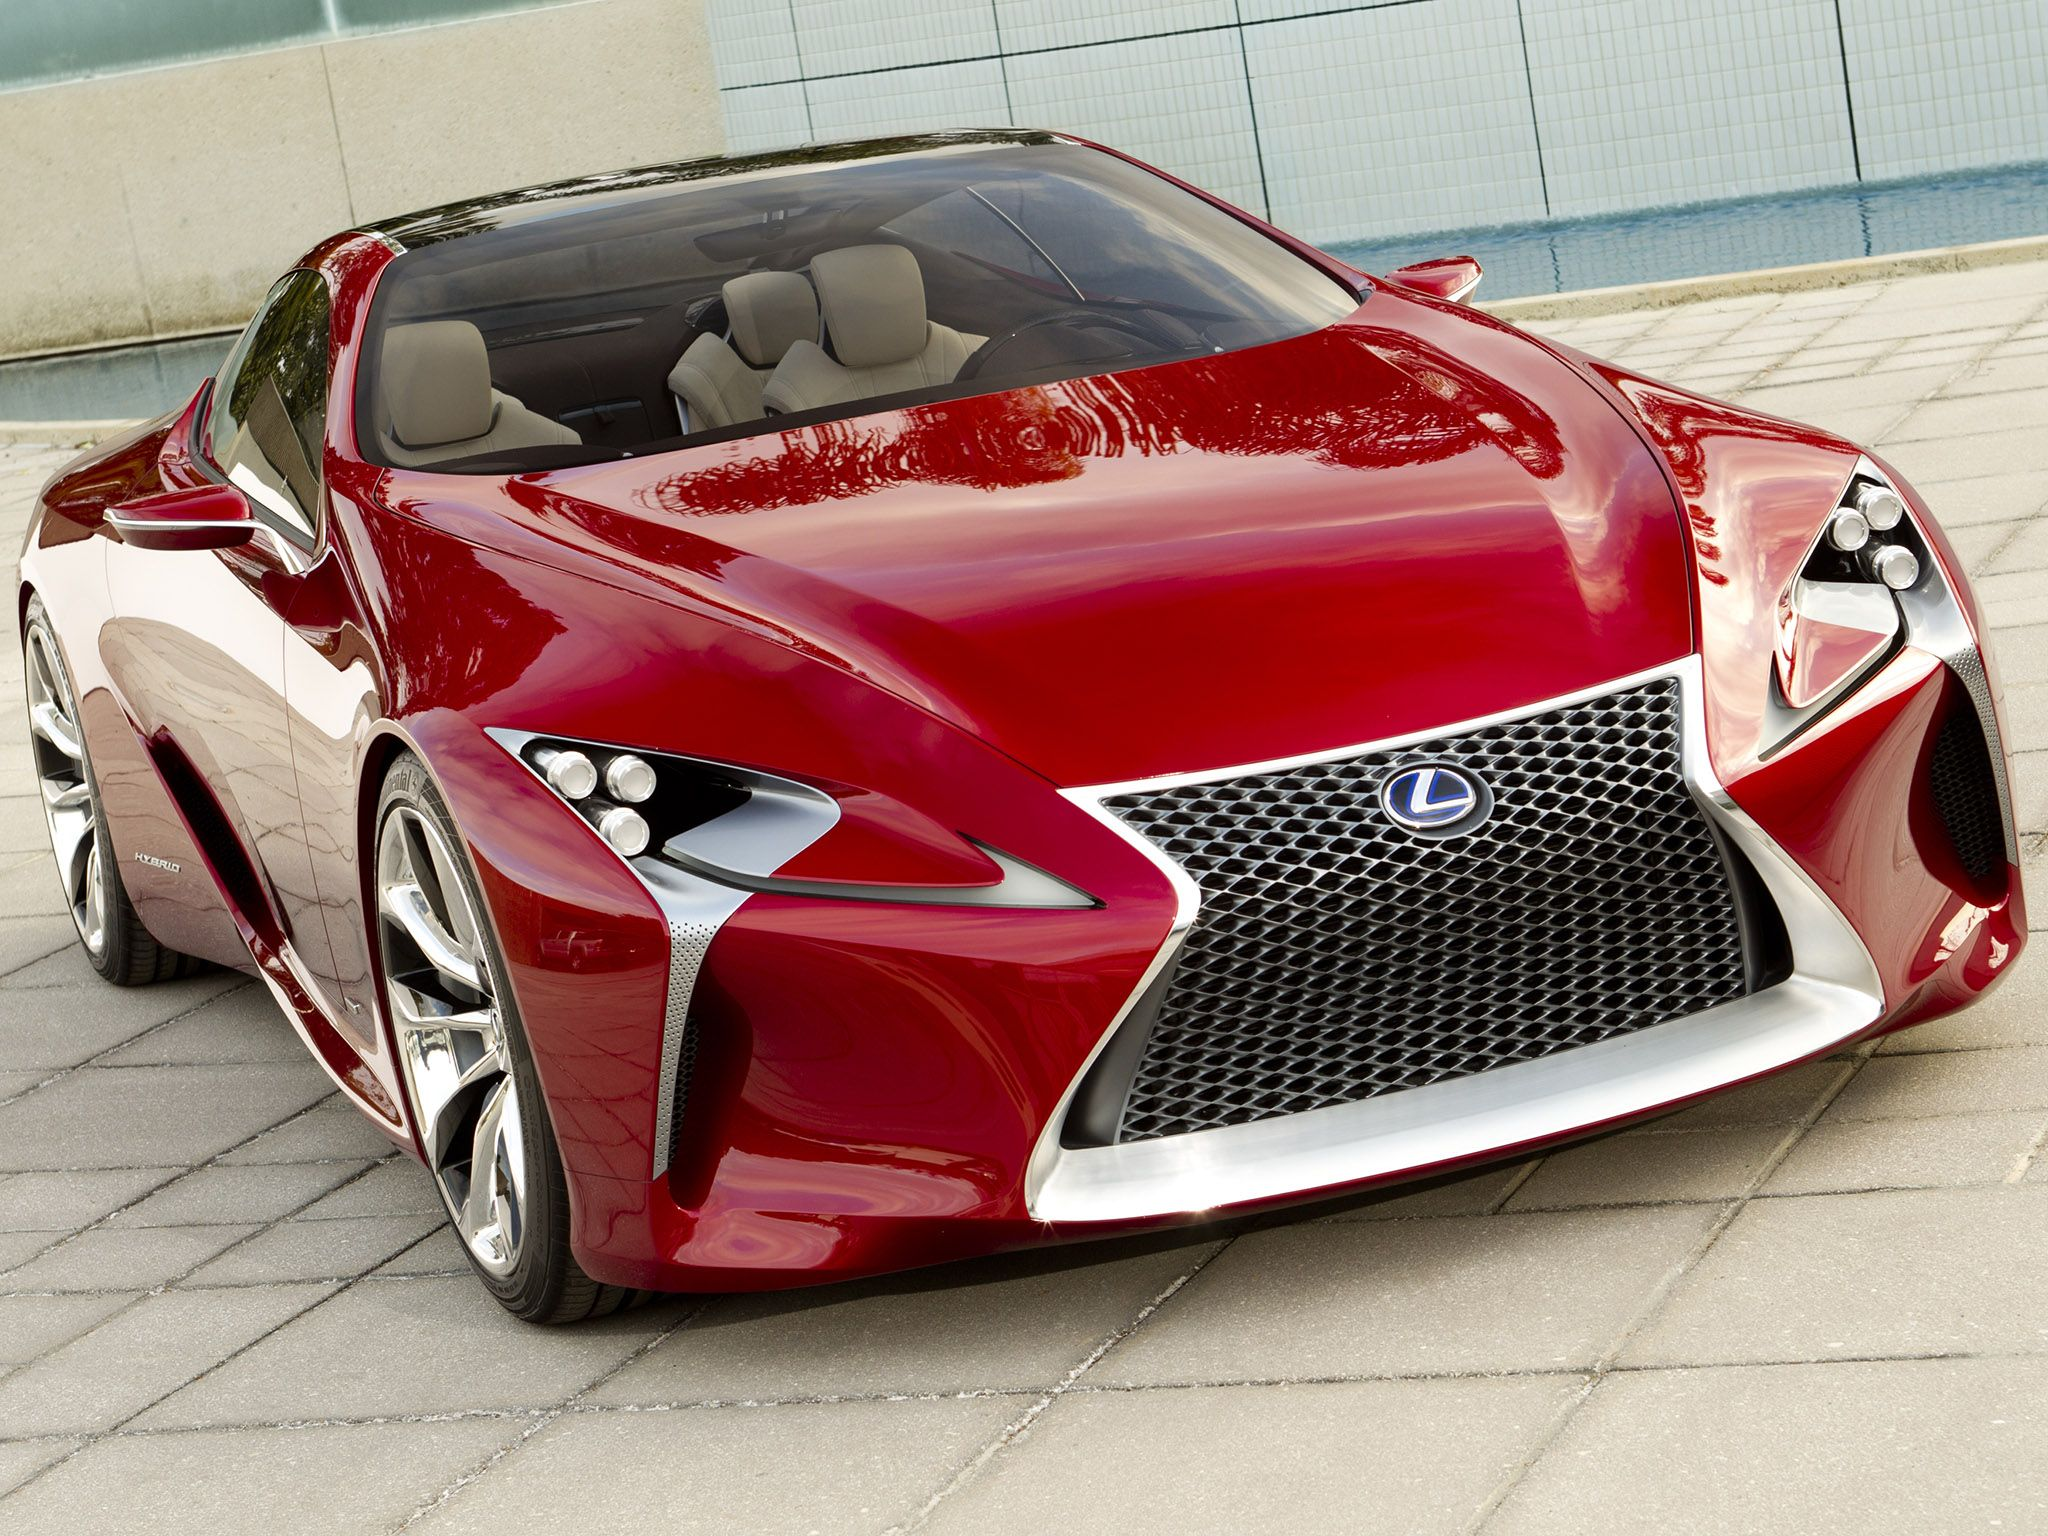 lexus cars - Google Search | cars | Pinterest | Car images, Cars and